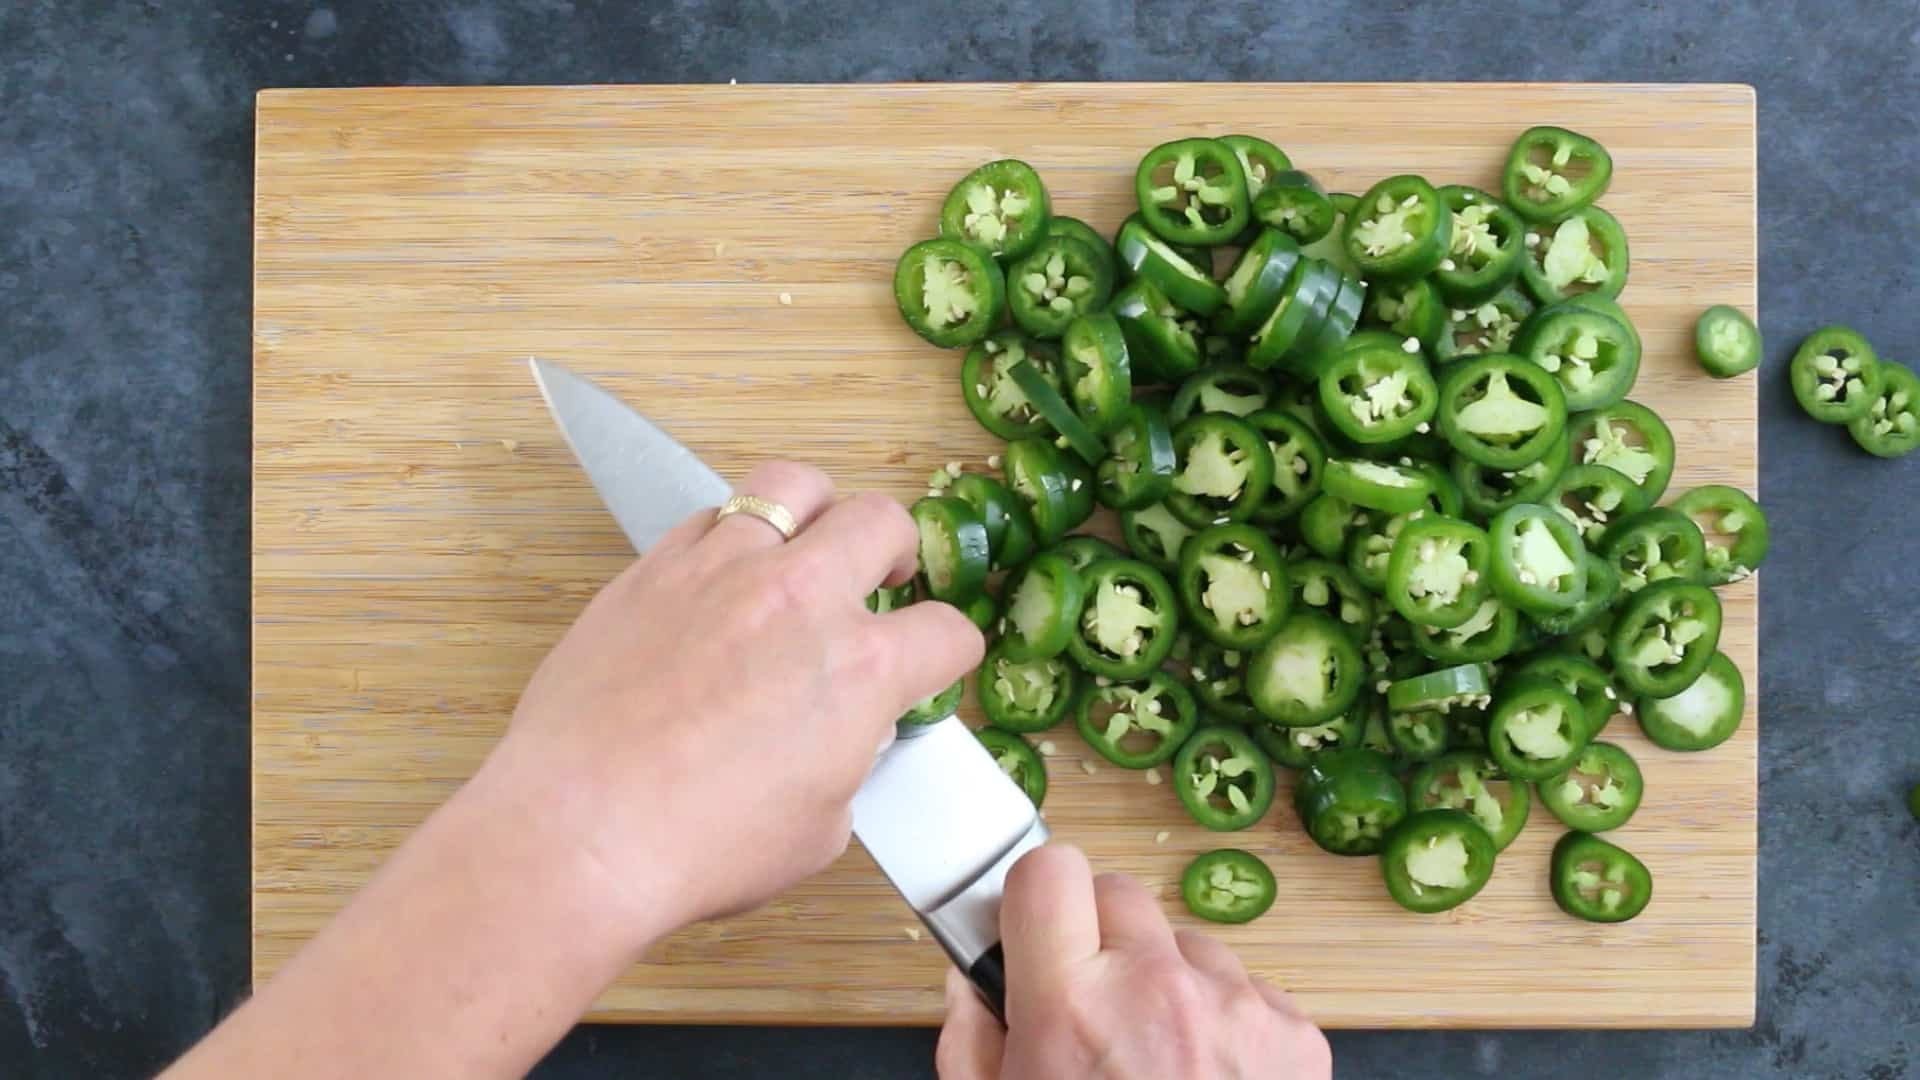 Chopping jalapeno peppers in a pan to make Candied Jalapenos (Cowboy Candy)